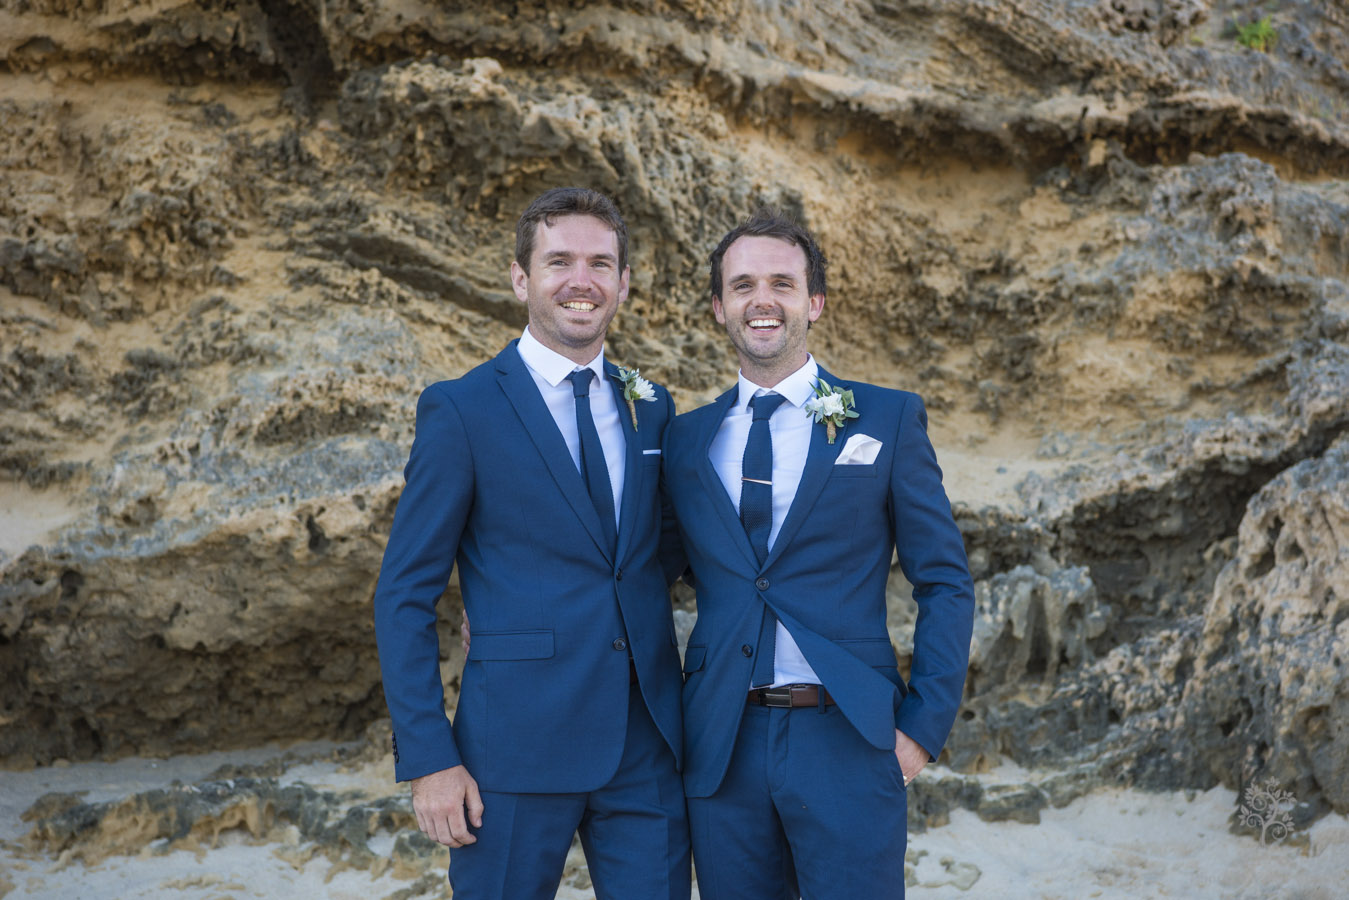 Sorrento groom and groomsmen